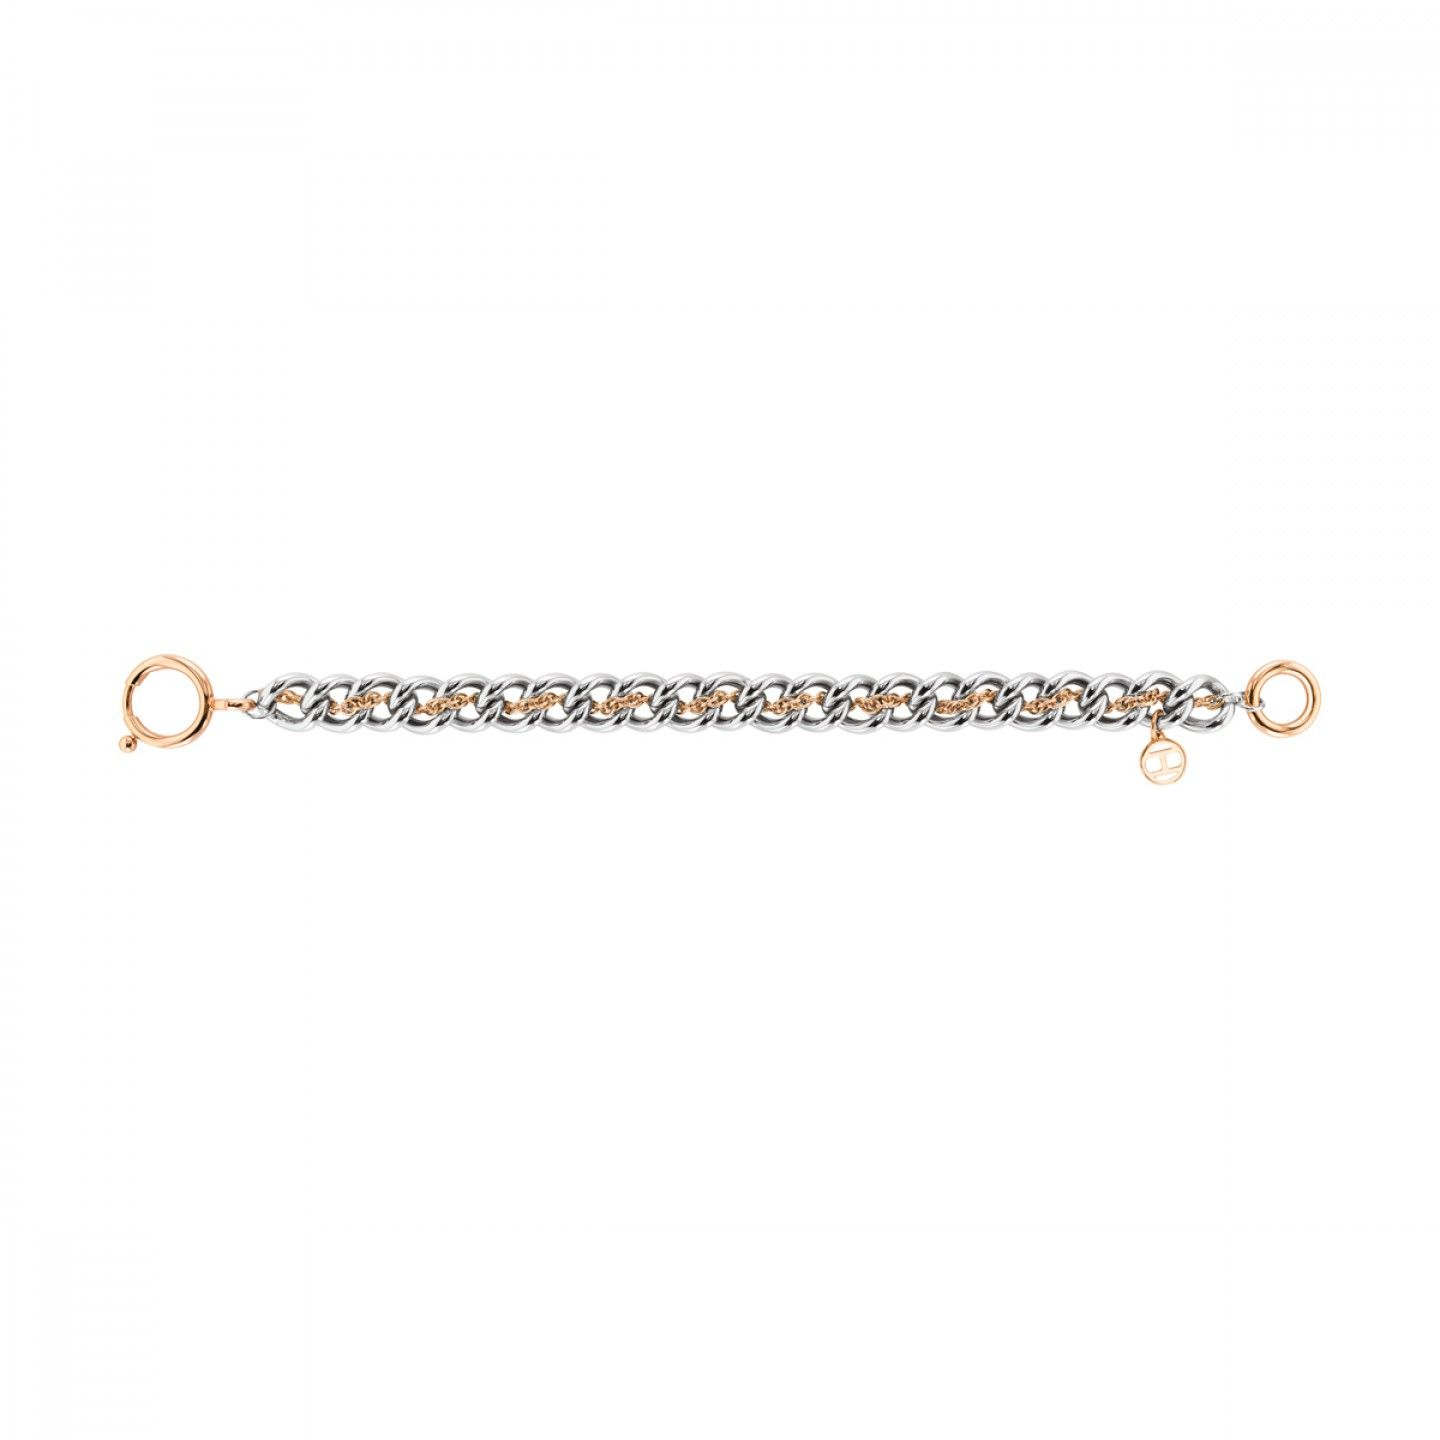 PULSEIRA TOMMY HILFIGER DOUBLE LINK